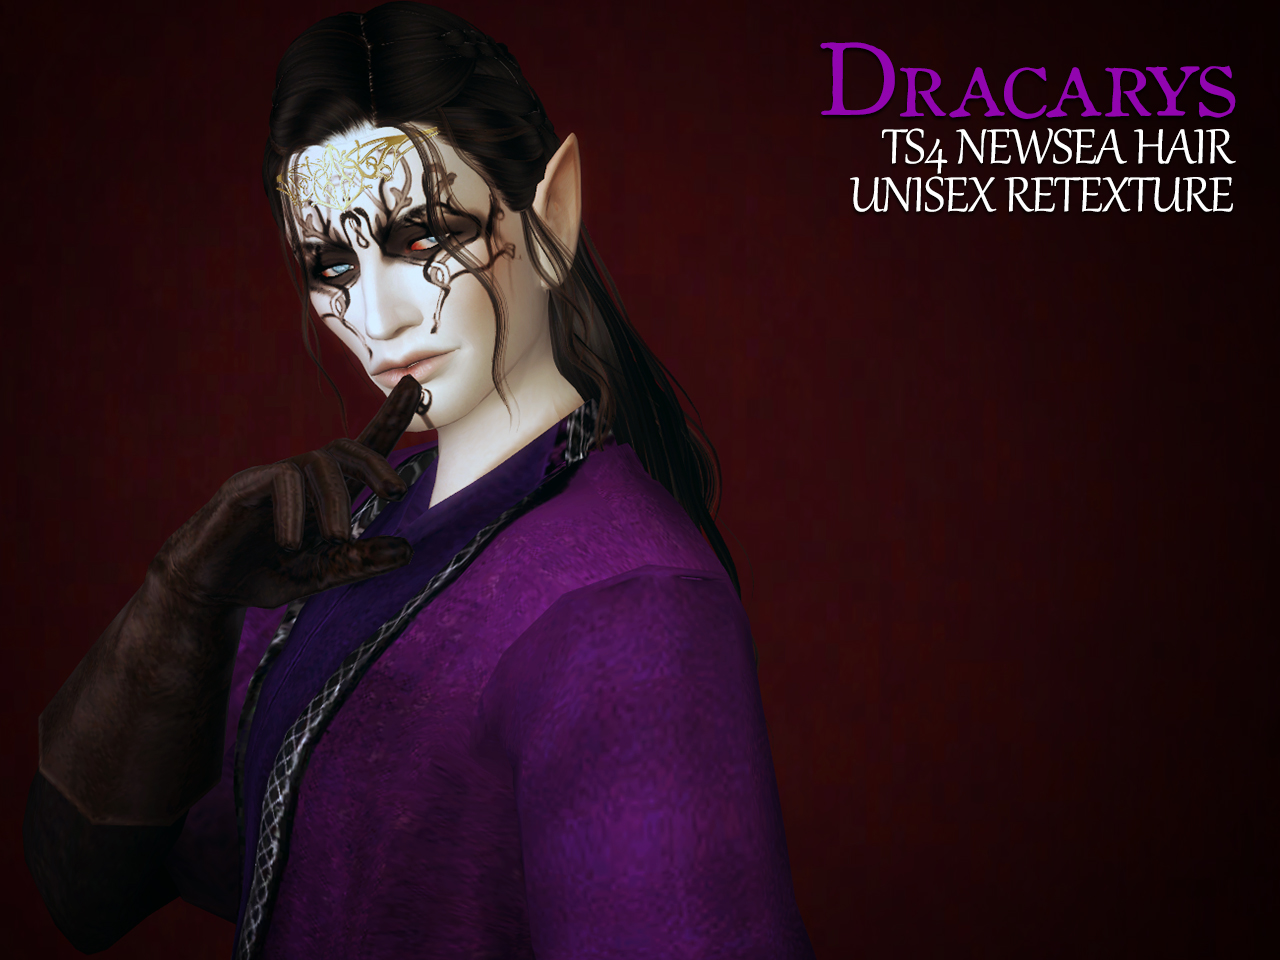 Dracarys Hair Retexture by Astraea Nevermore